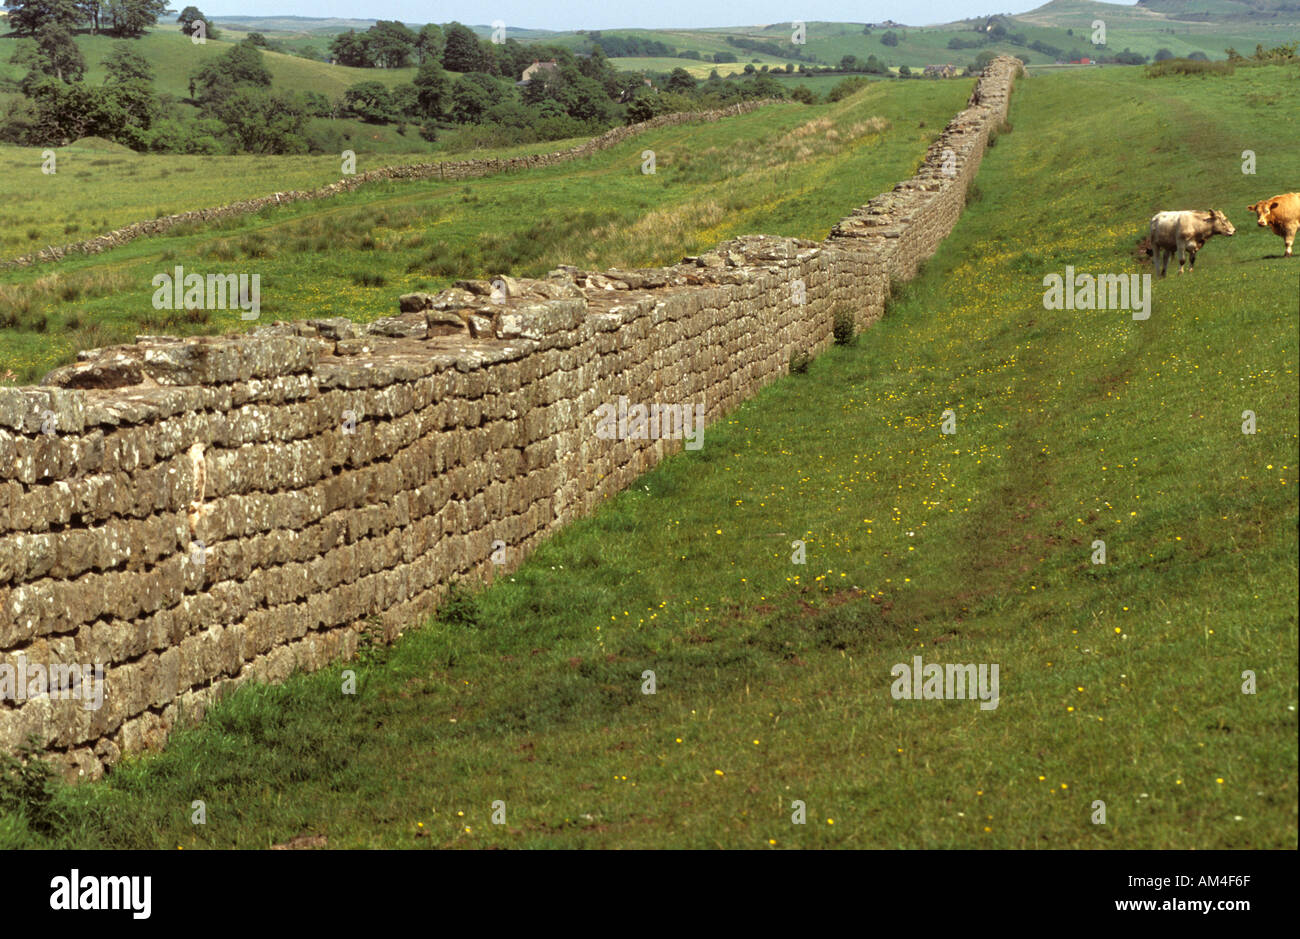 Hadrians Wall in northern England, built to prevent military raids on Roman Britain by the Pictish tribes of Scotland - Stock Image